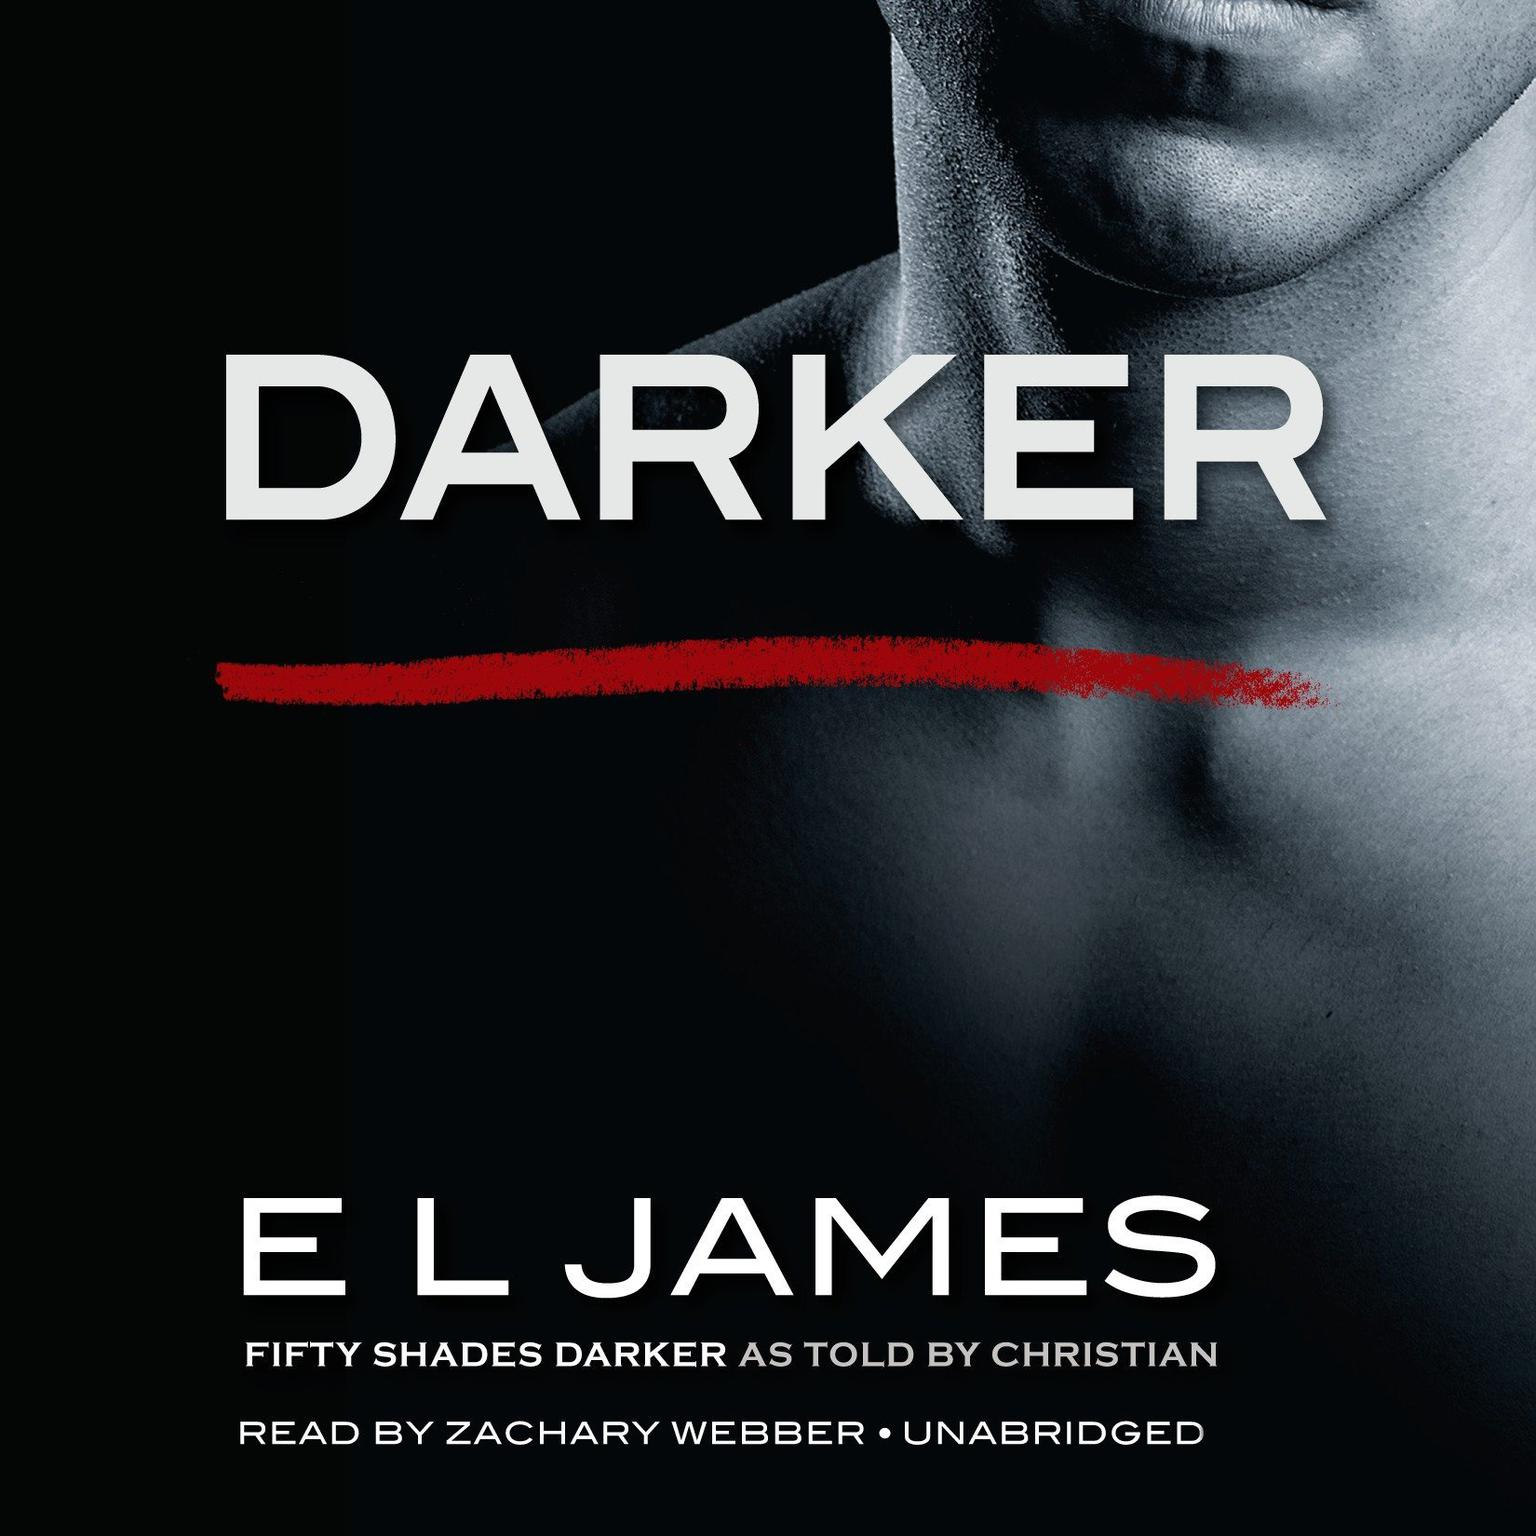 Fifty shades darker book 2 pdf download